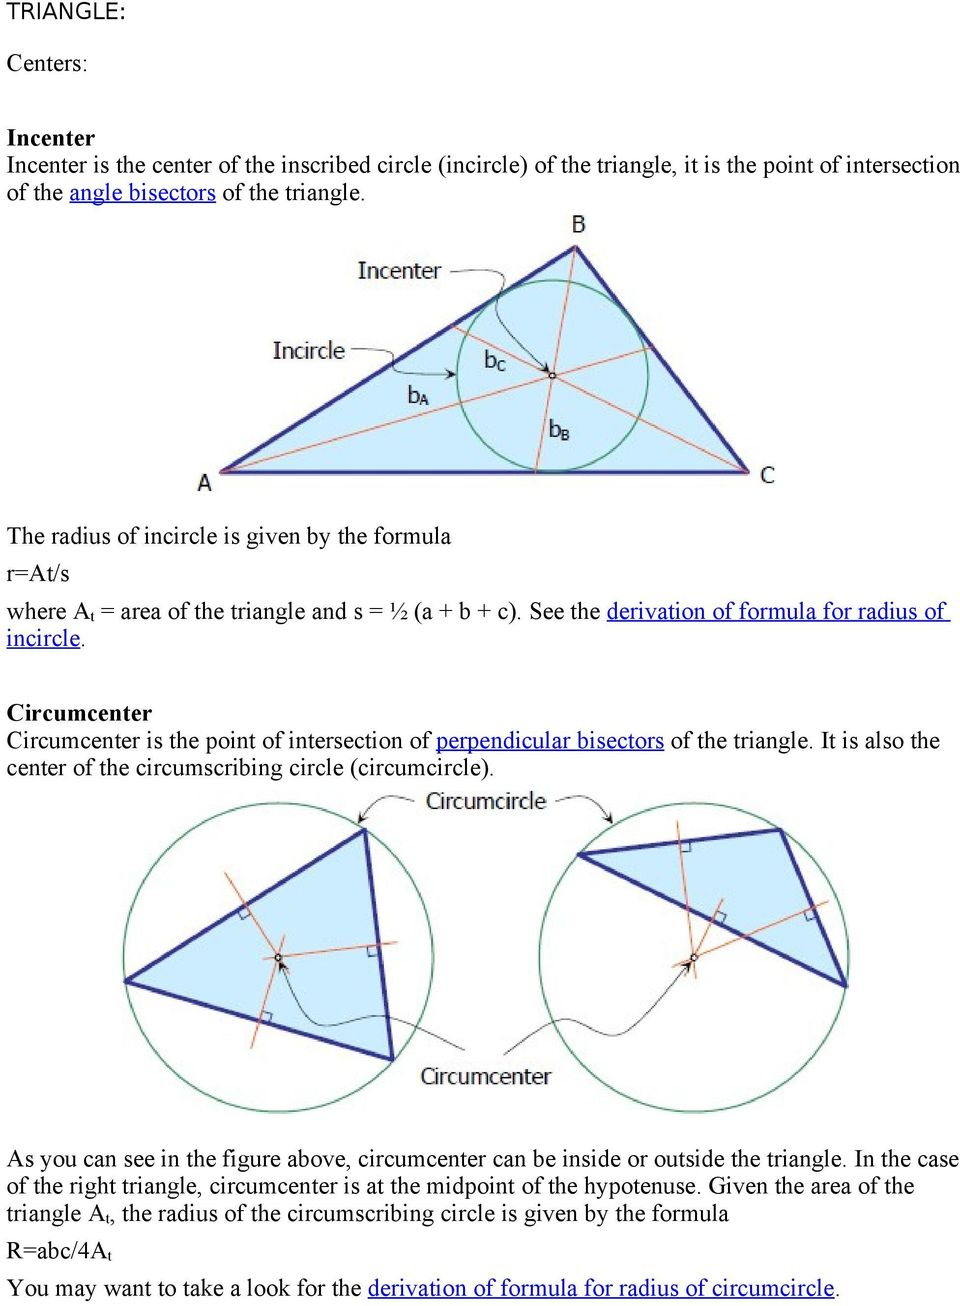 Circumcenter Circumcenter is the point of intersection of perpendicular bisectors of the triangle. It is also the center of the circumscribing circle (circumcircle).